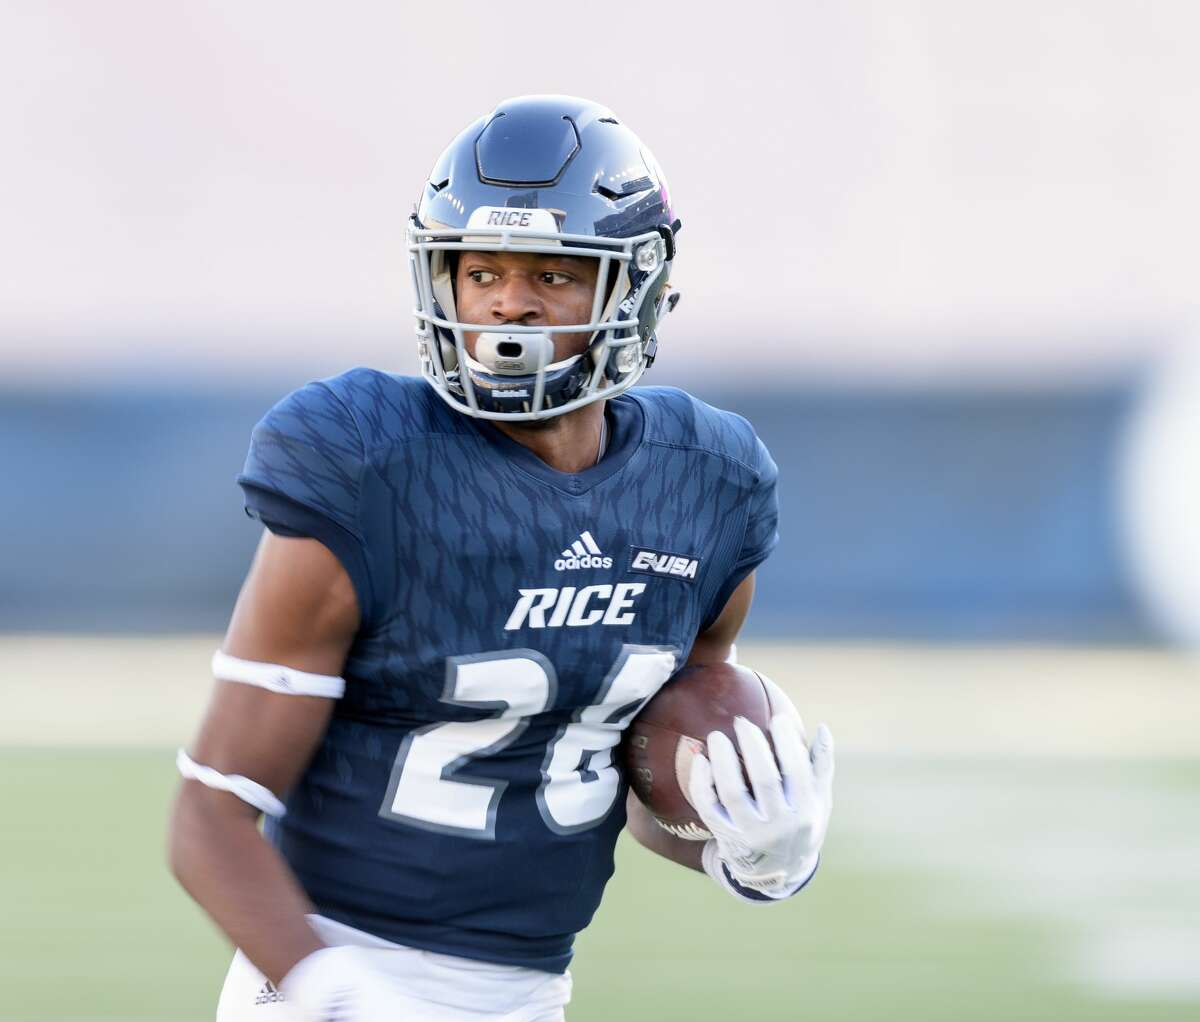 Aaron Cephus (28) of the Rice Owls has a long run for a touchdown after a reception to tie the game 28-28 in the second half against the Louisiana Tech Bulldogs in a Conference USA football game on Saturday, October 28, 2017 at Rice Stadium in Houston Texas.